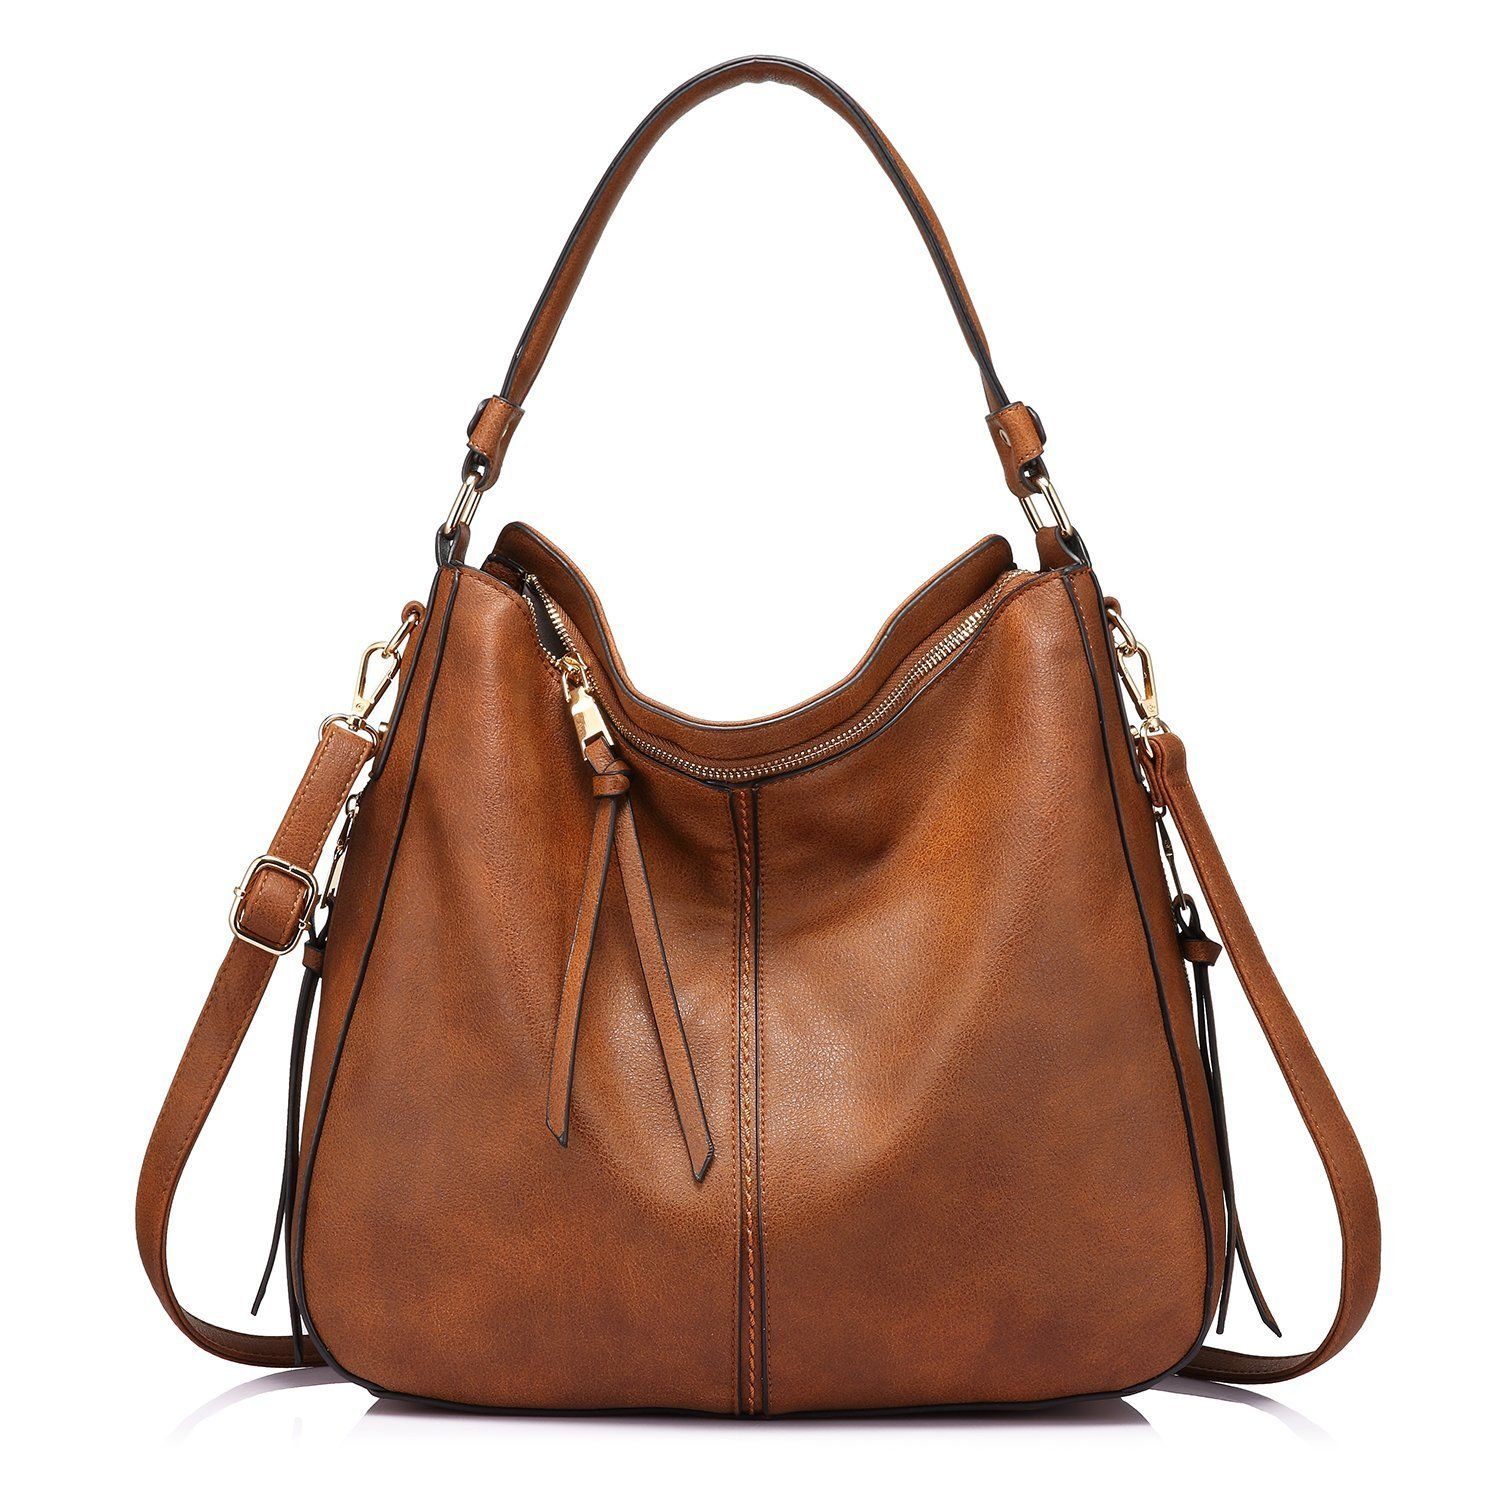 eeaab7f44 Handbags are among the most functional, hard-working accessories in our  closet. Here's a list of 10 best leather handbags for most women this year.